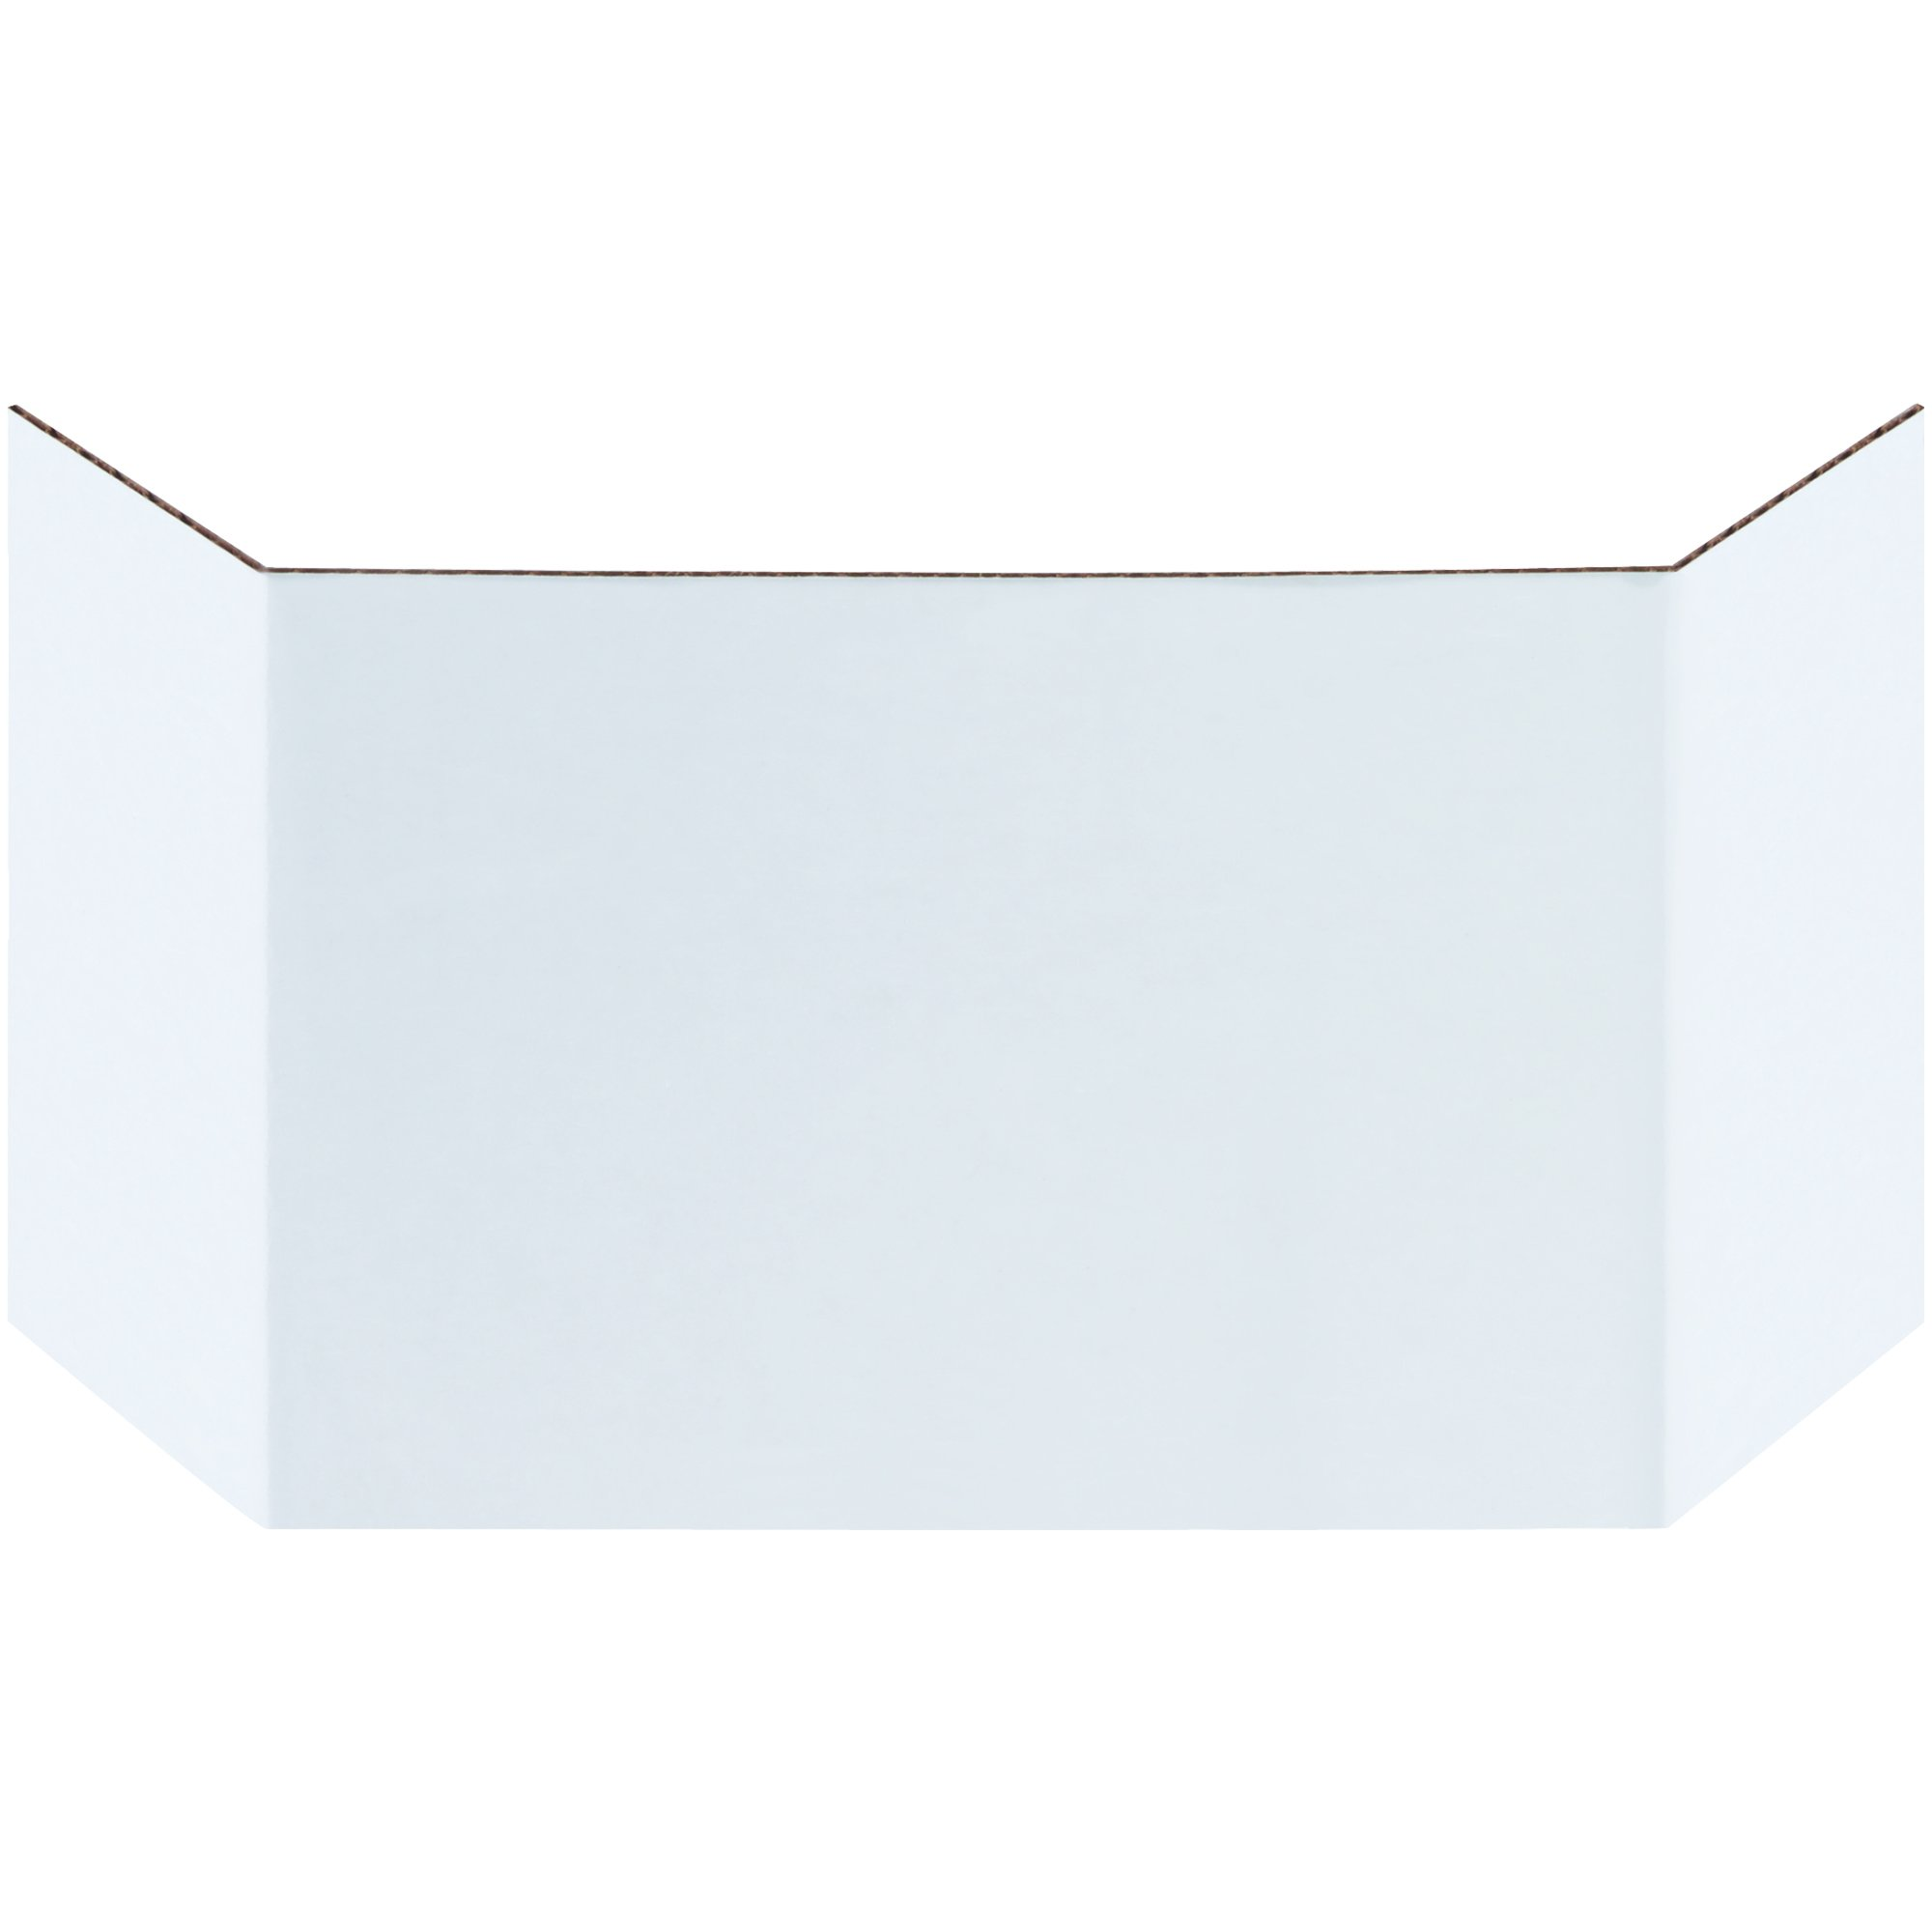 BOX USA BBIND6 Corrugated Bin Dividers, 6'', Oyster White (Pack of 100) by BOX USA